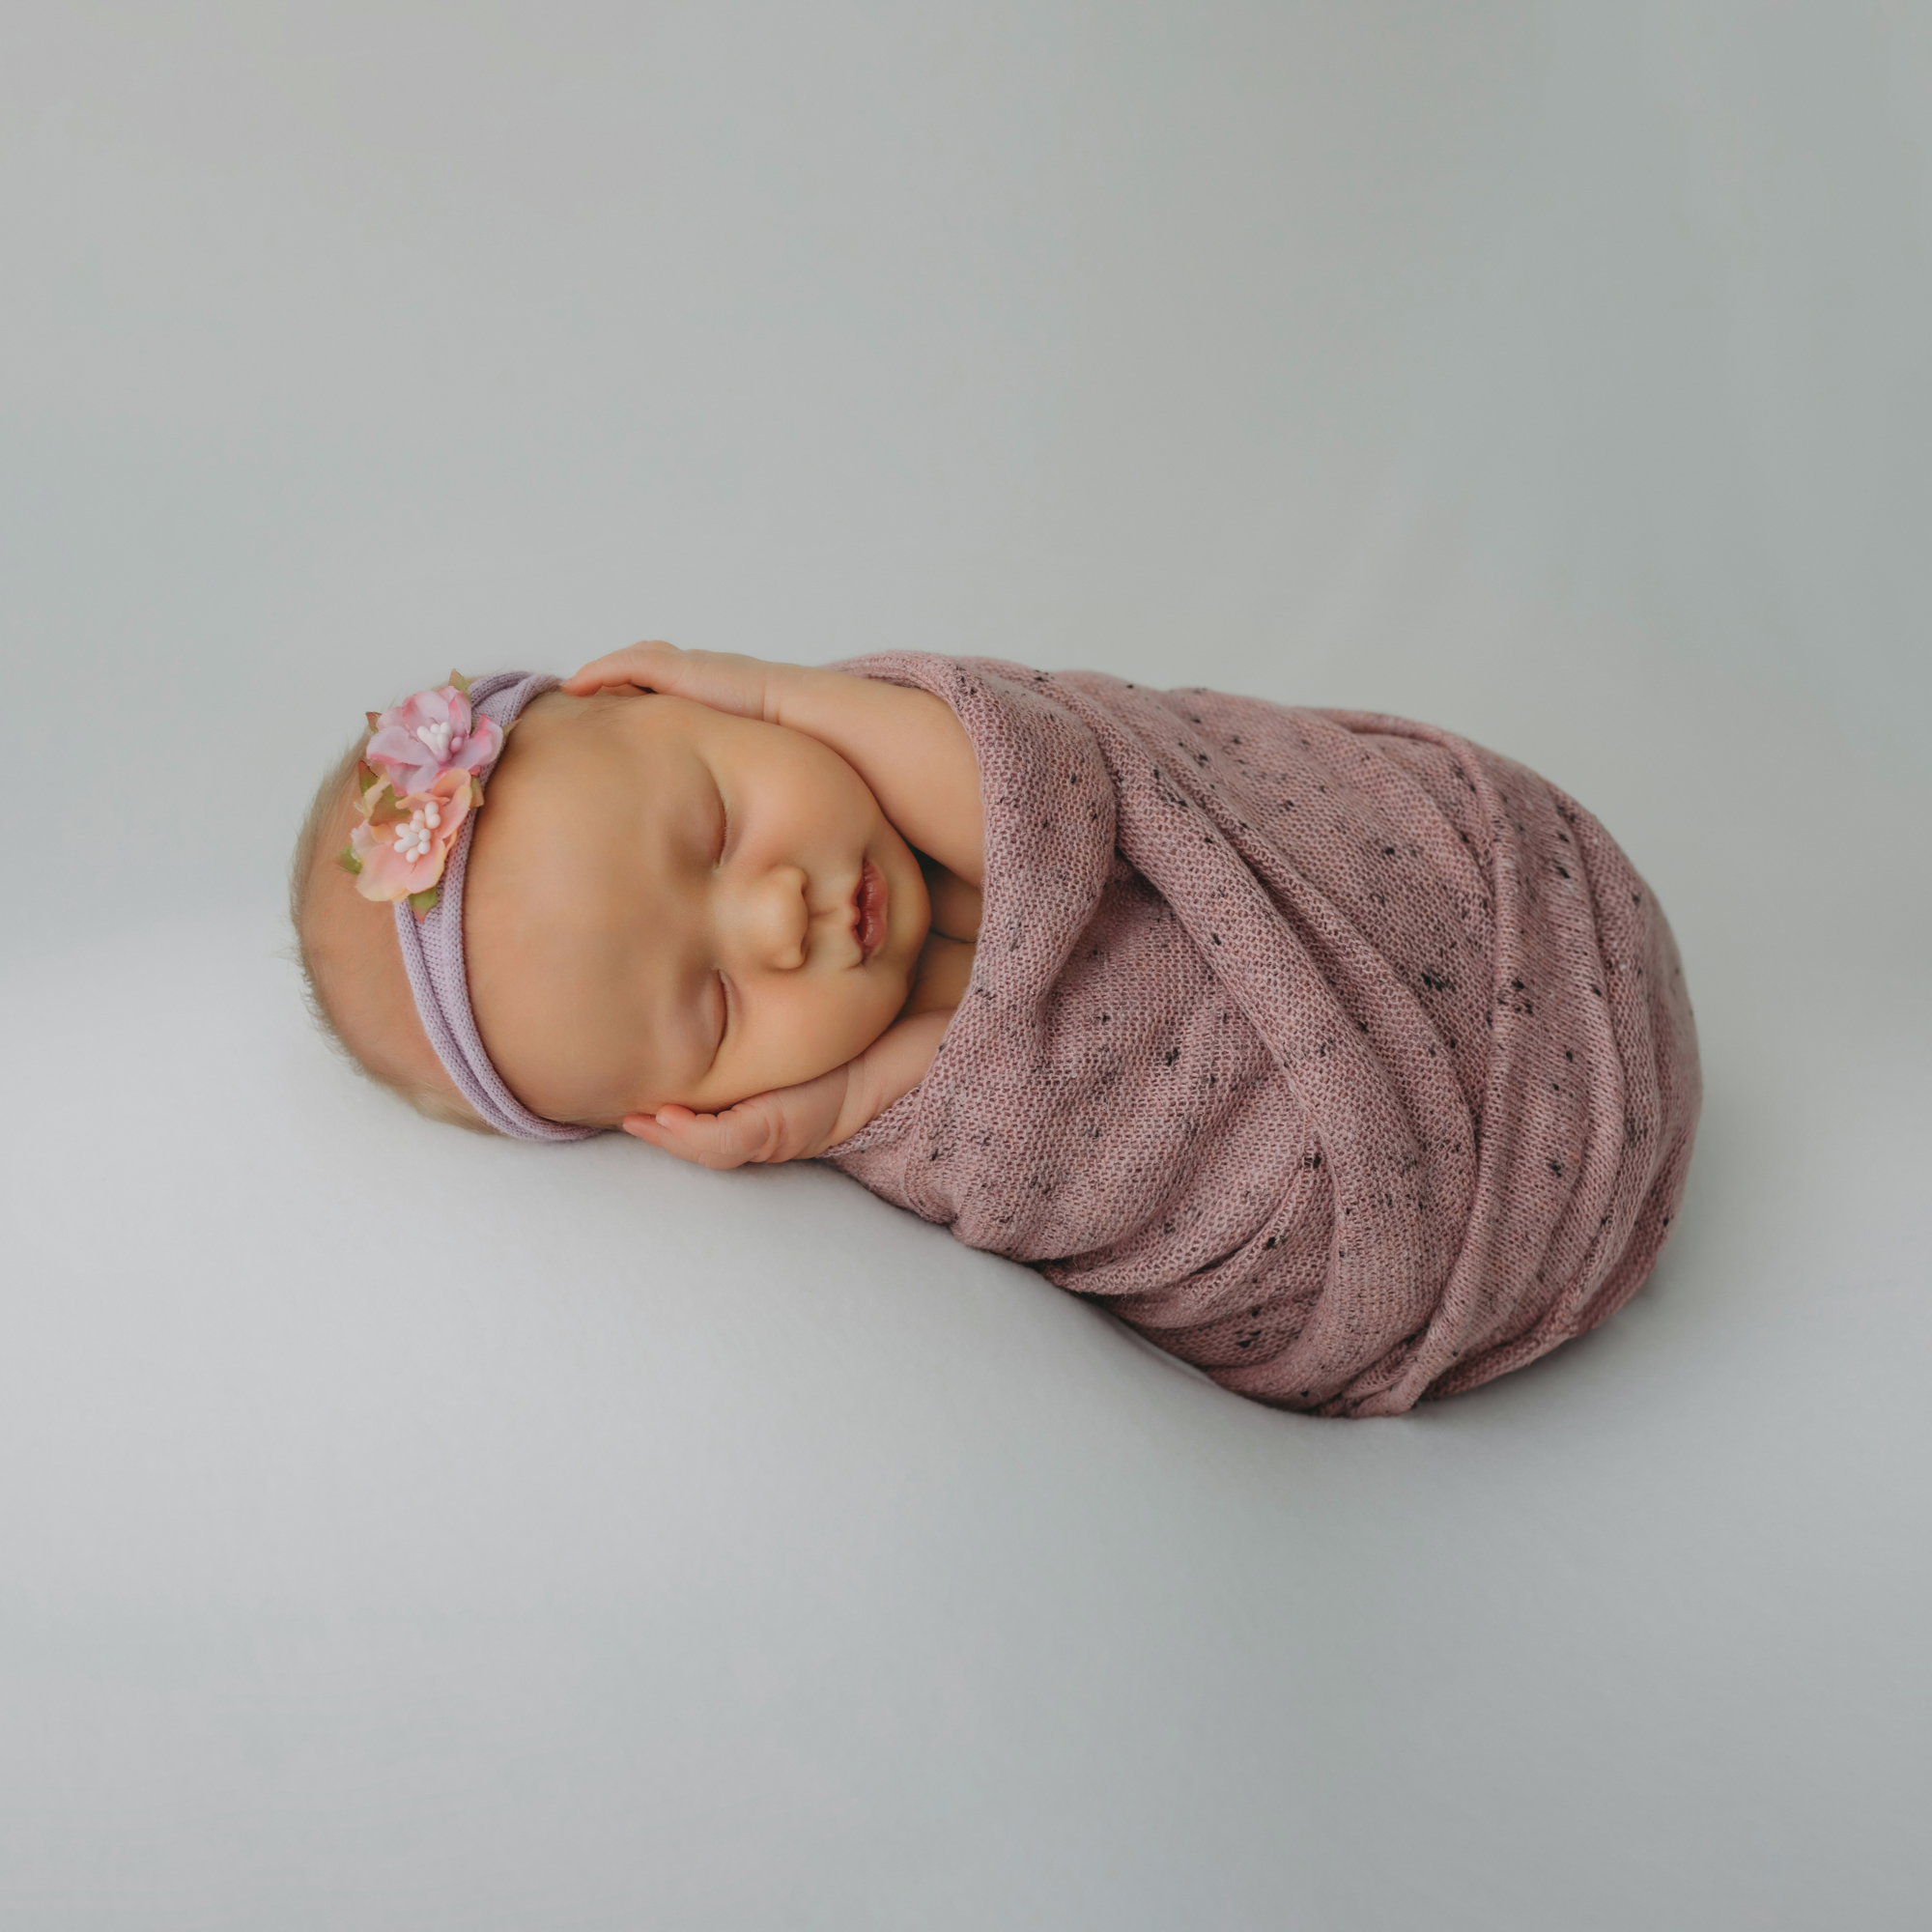 Newborn portrait of baby in pink wrap and headband